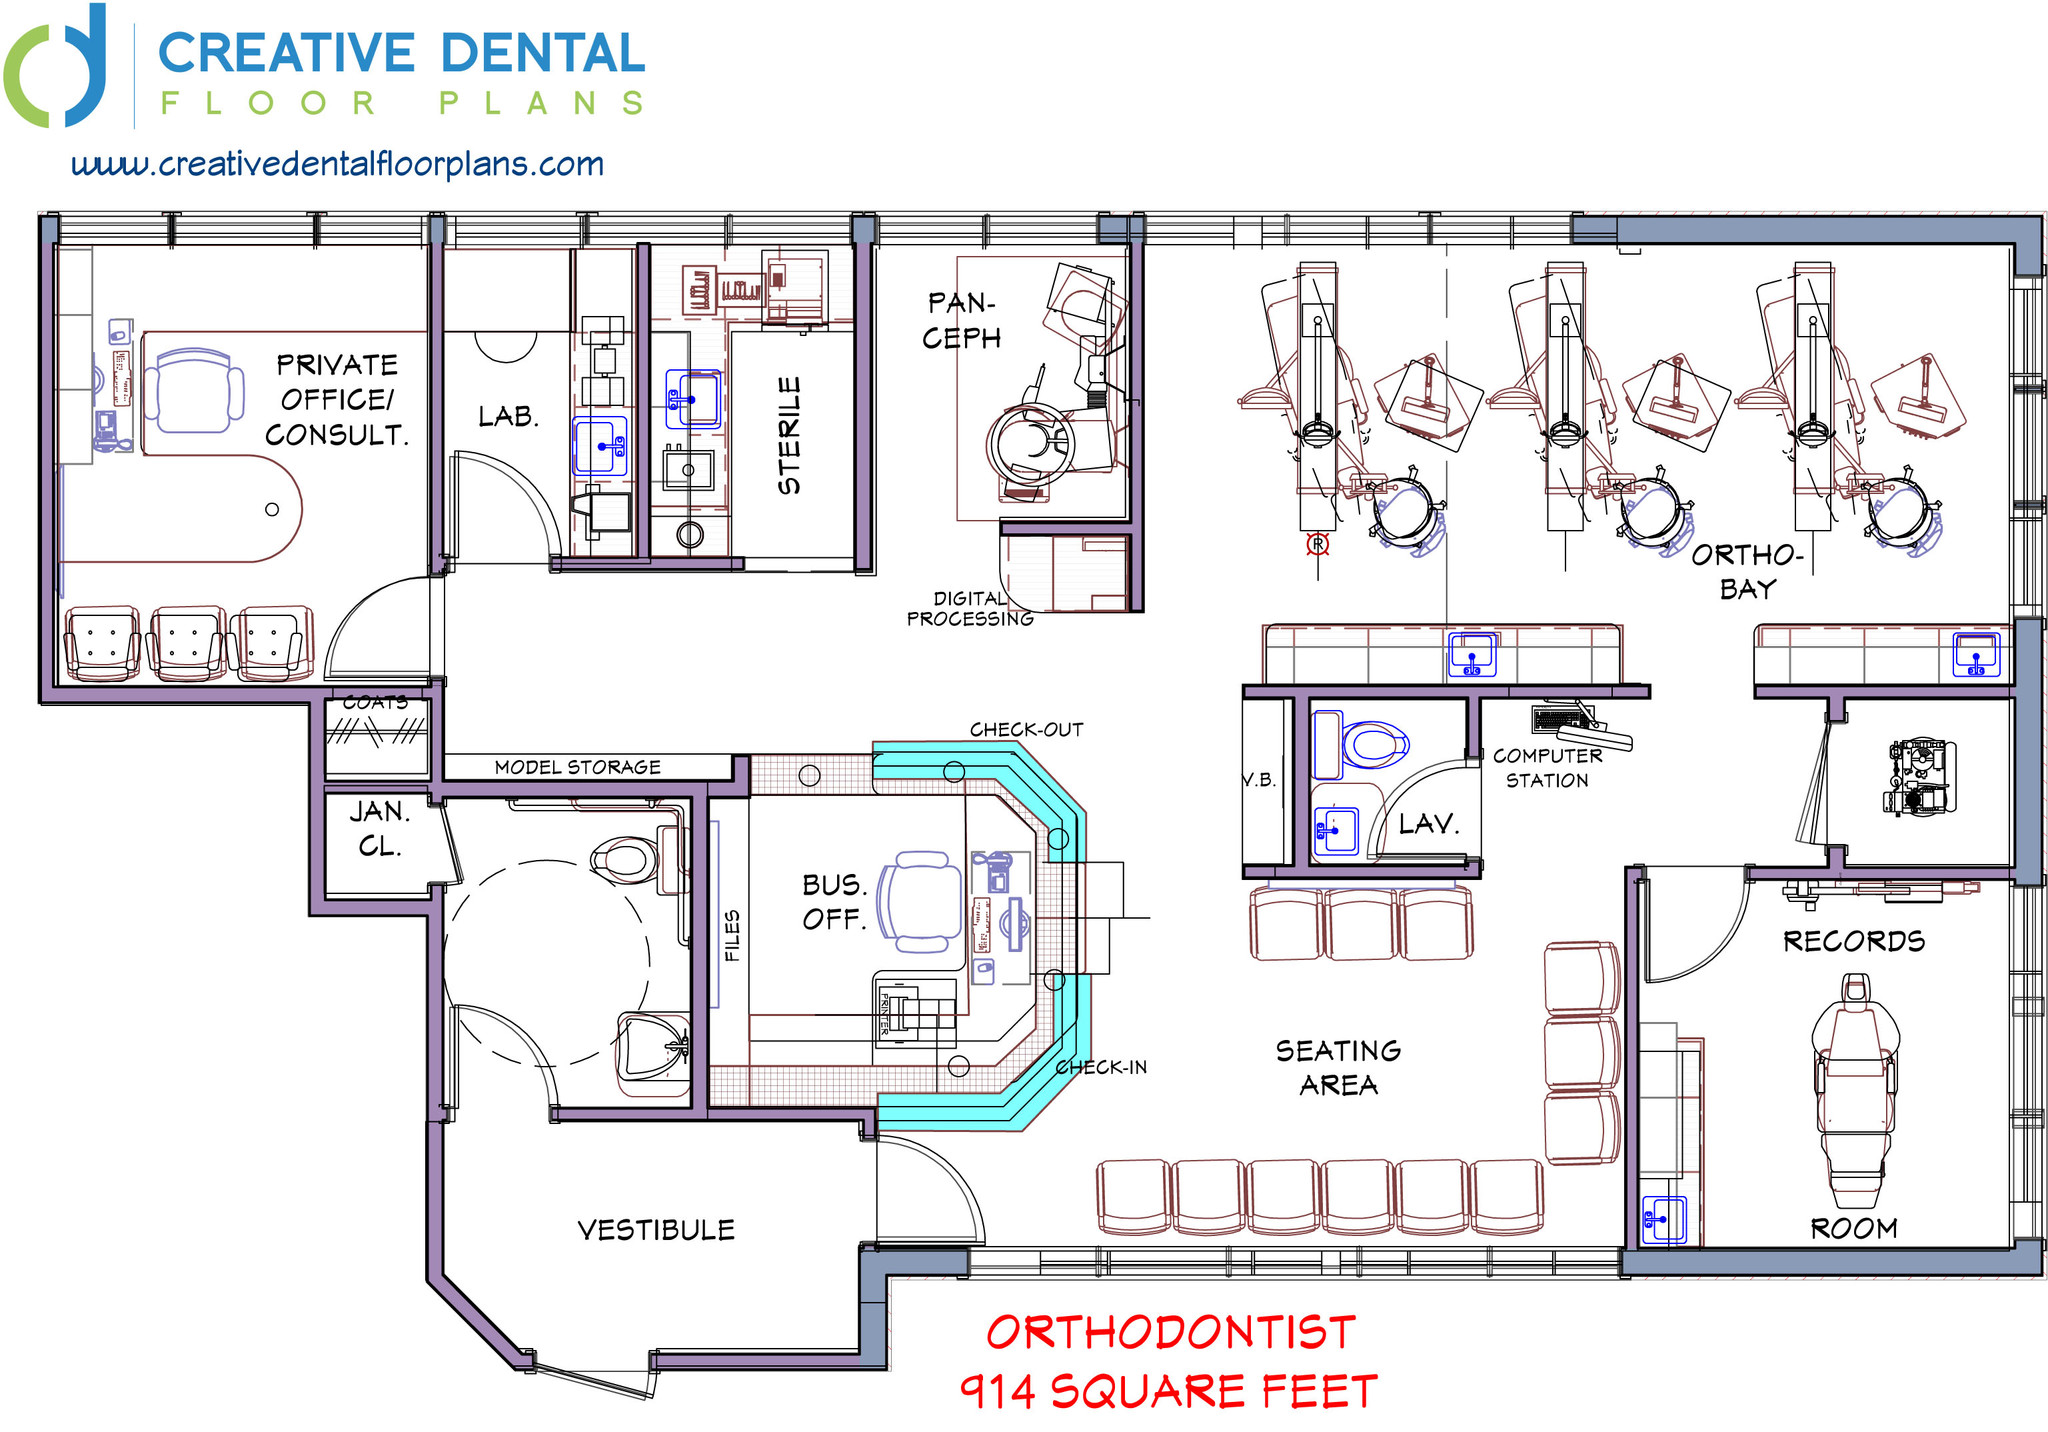 Orthodontic office design floor plan meze blog for Create my floor plan